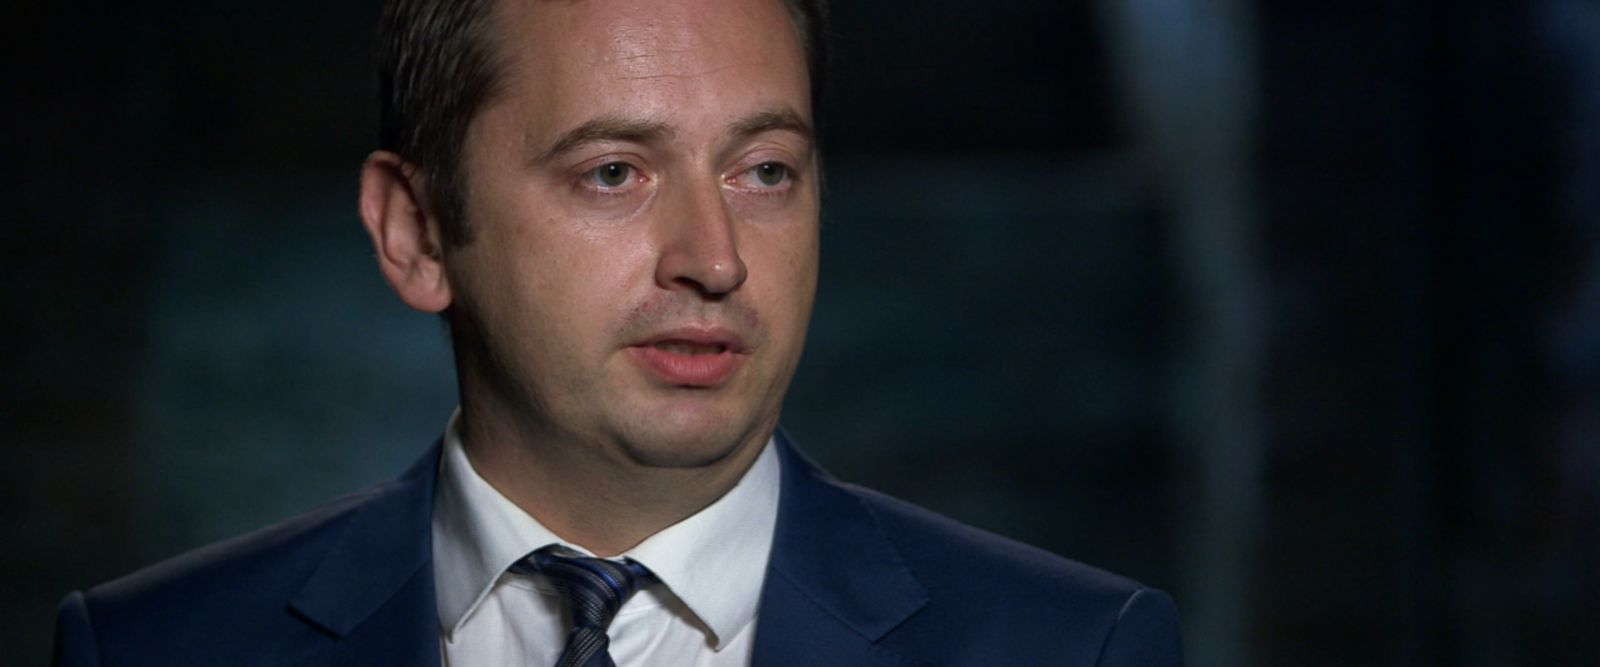 Sergei Millian, in a July 2016 interview with ABC News' Brian Ross, claimed to have connections to Donald Trump.